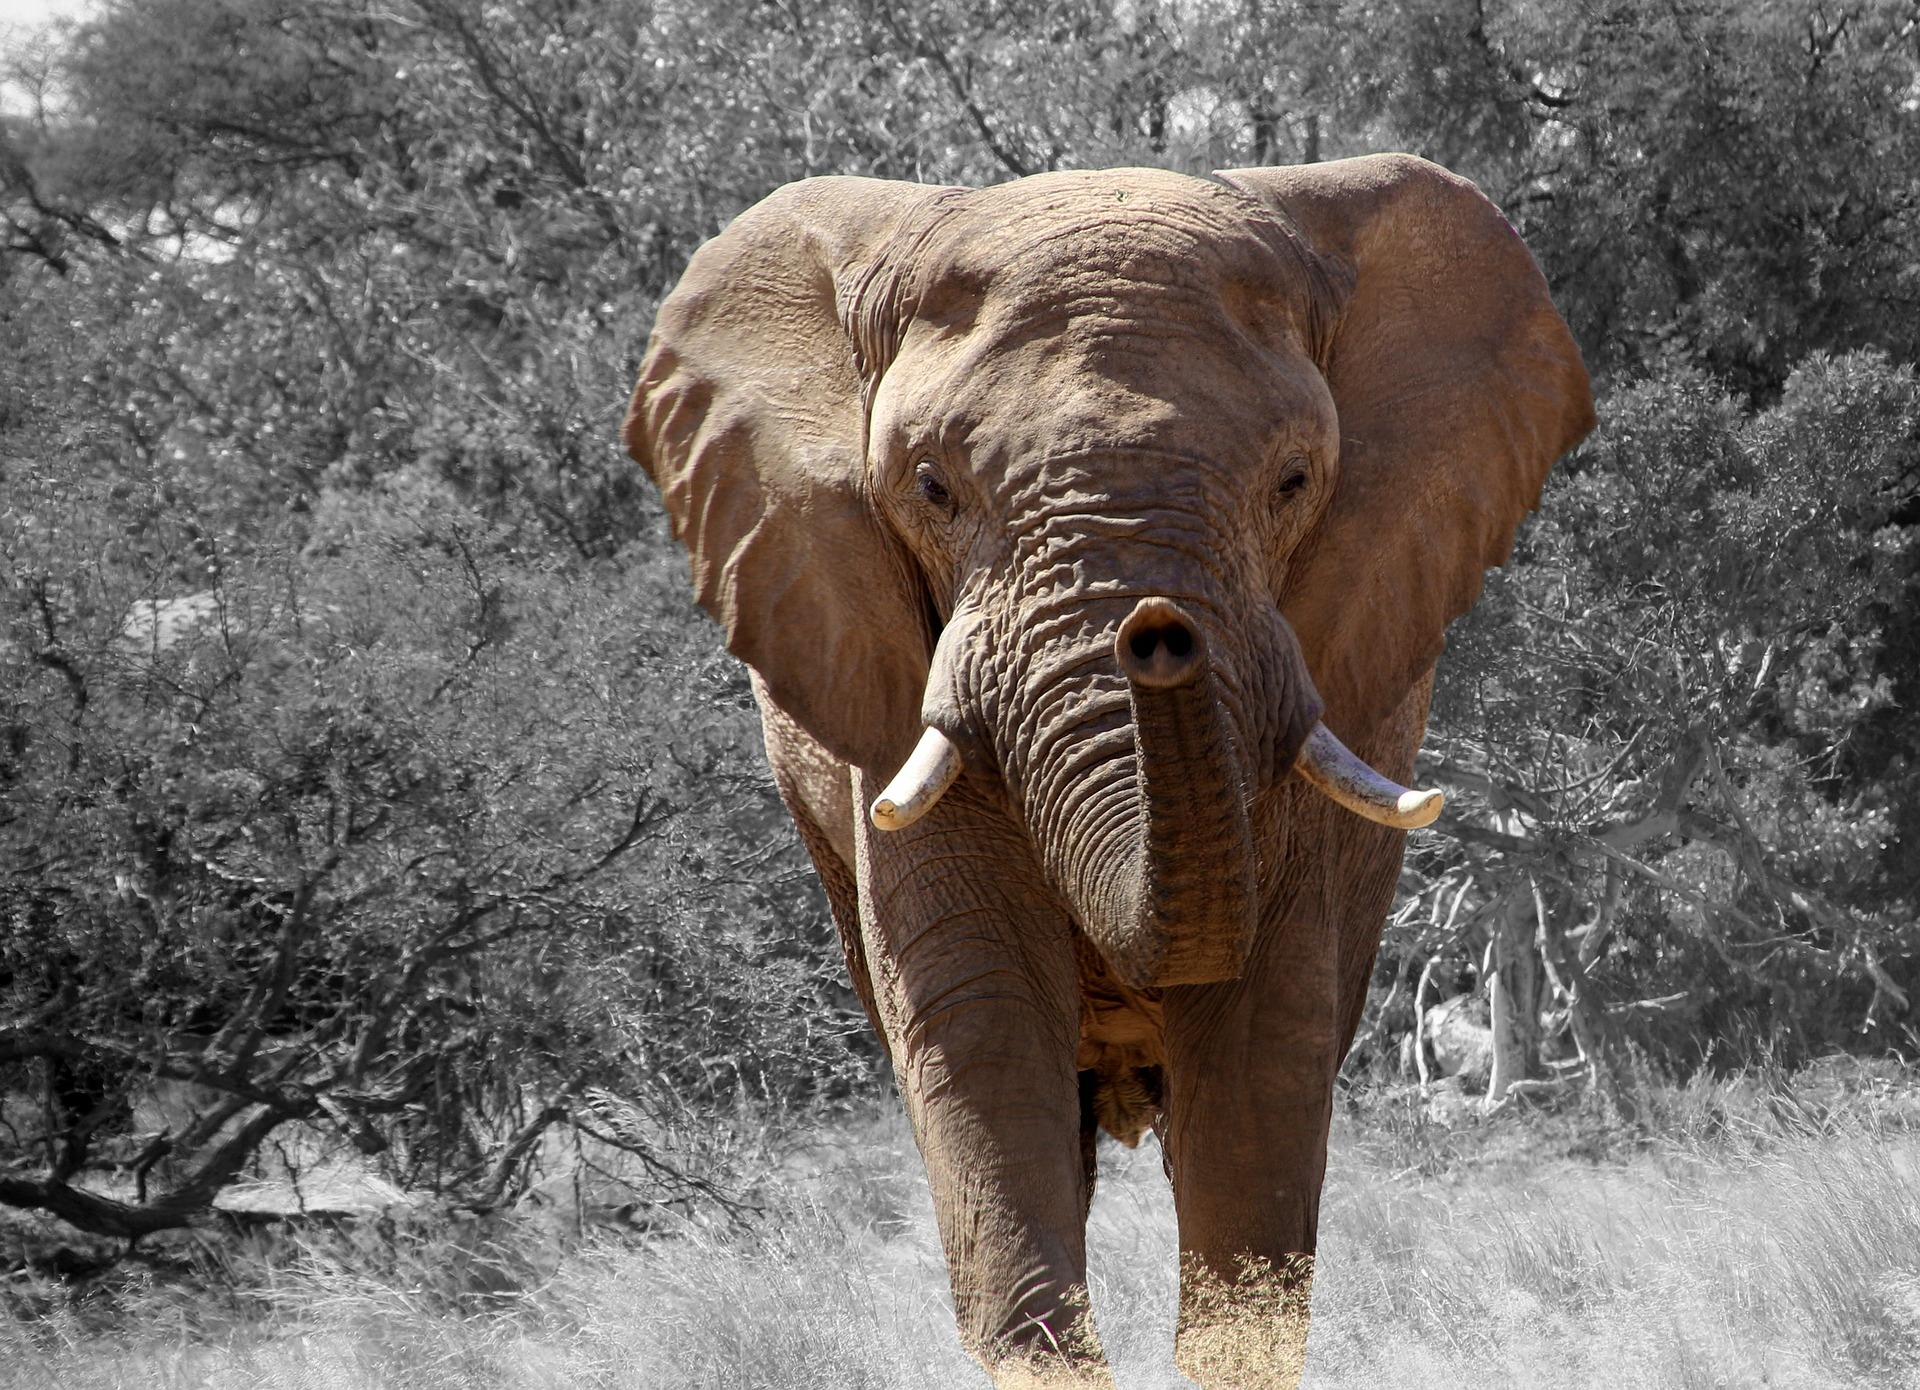 An elephant in Namibia